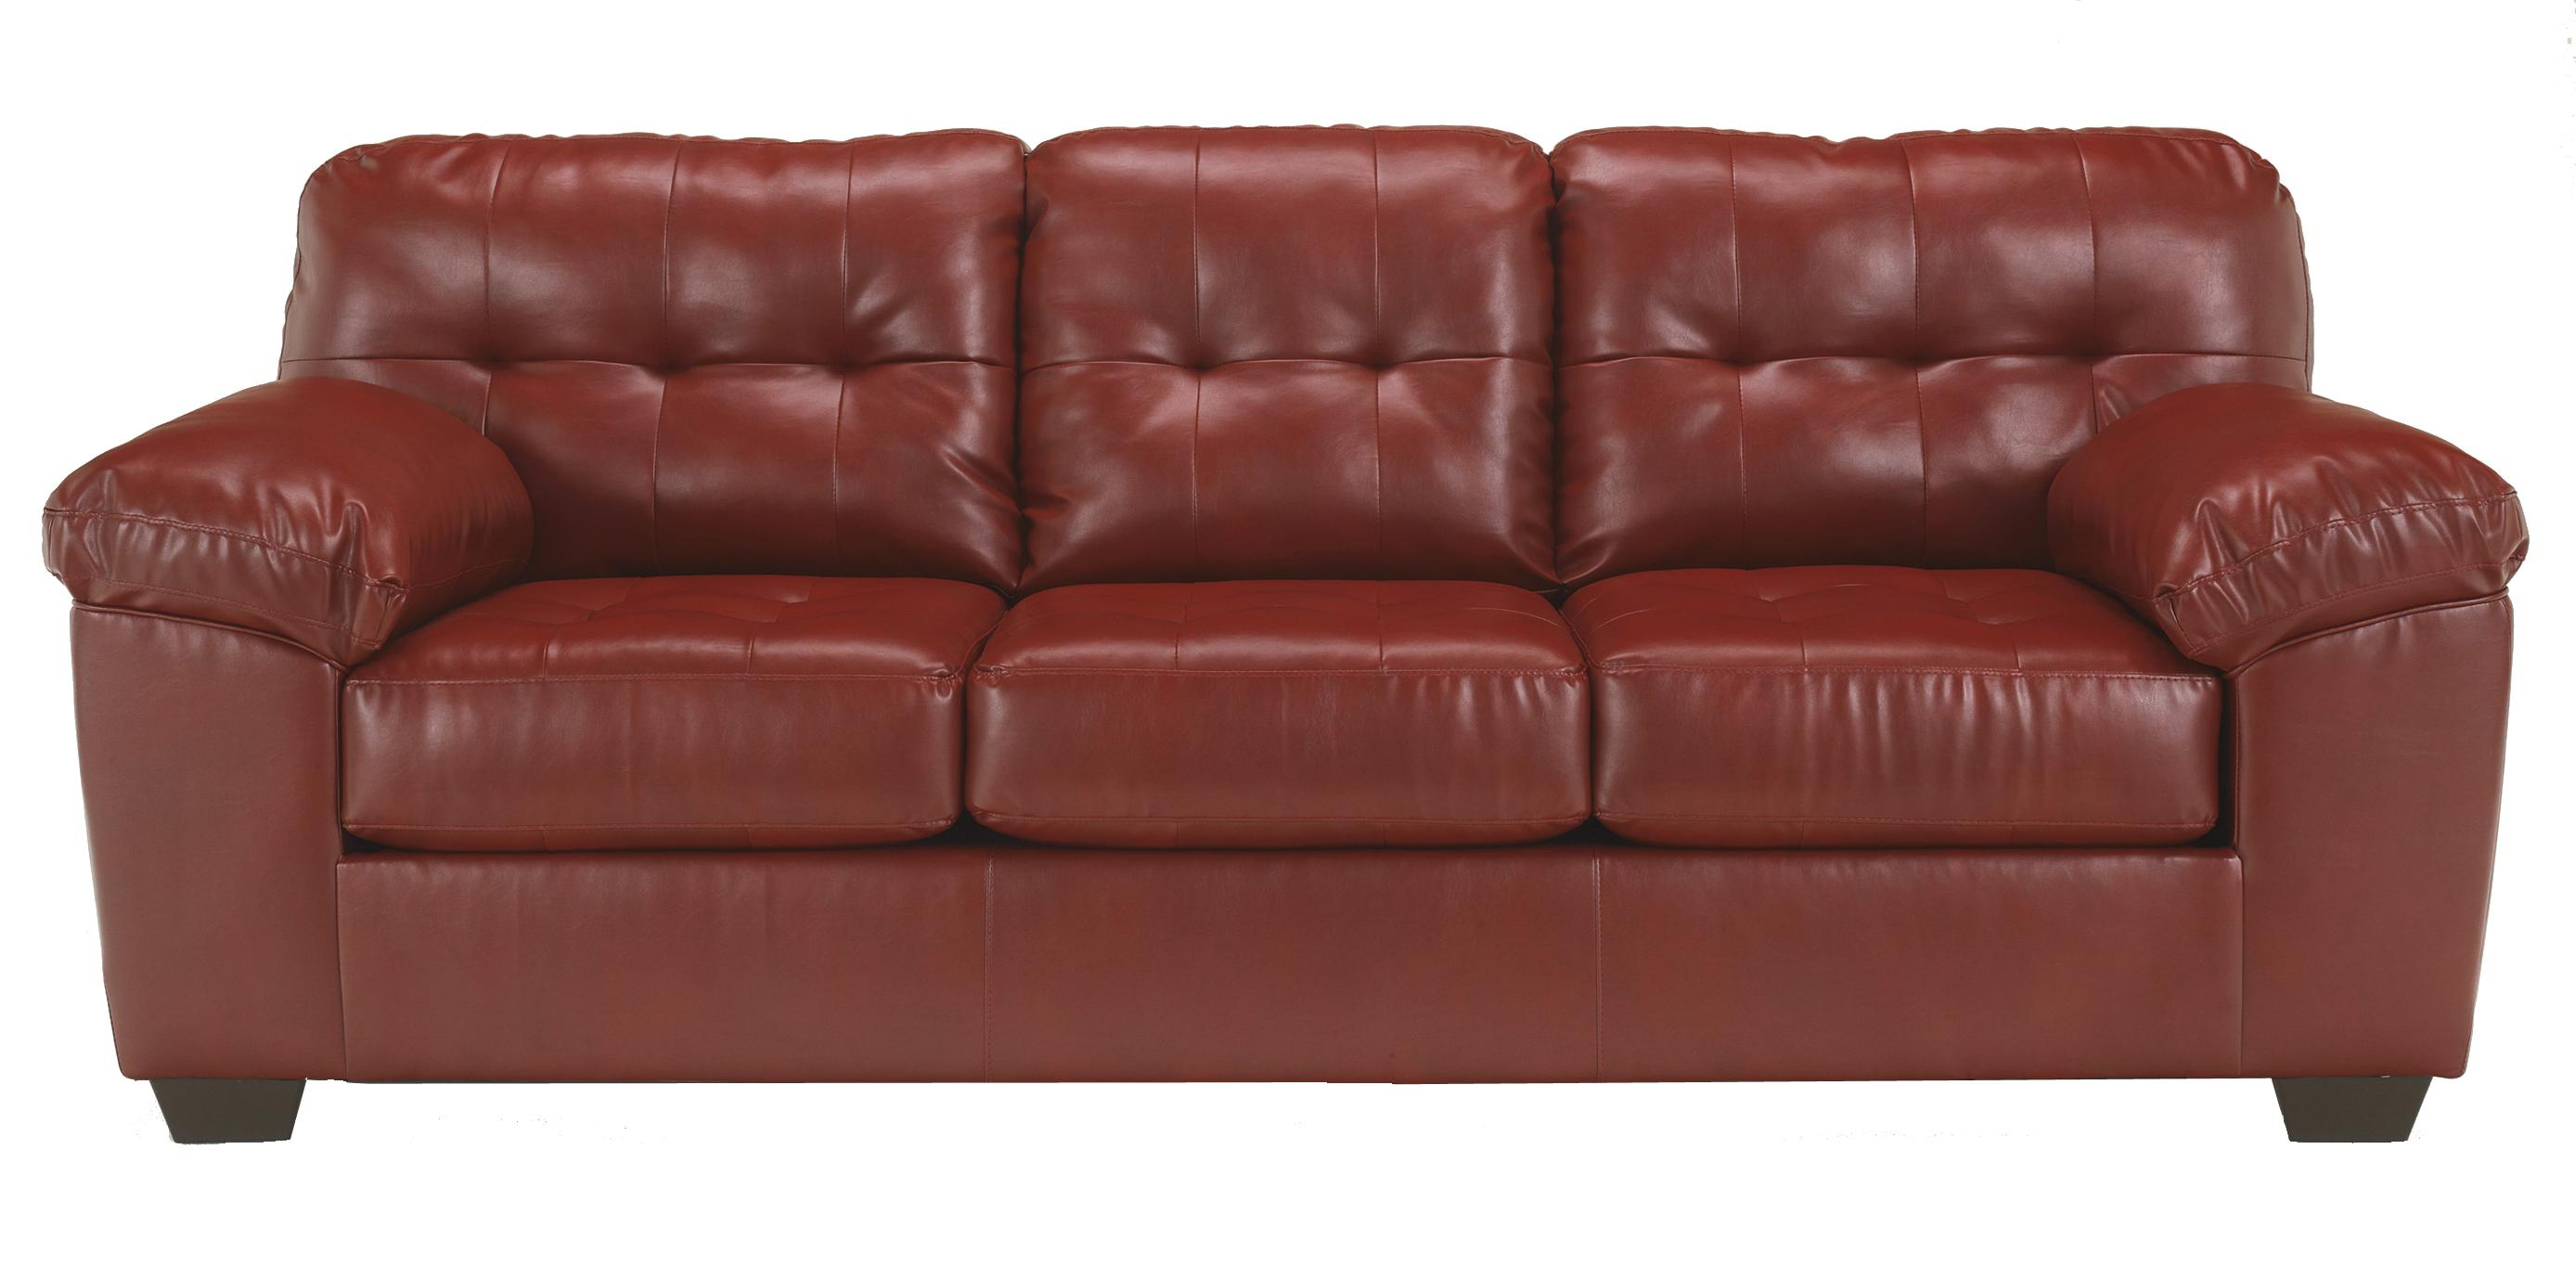 Signature Design by Ashley Alliston DuraBlend® - Salsa Queen Sofa Sleeper - Item Number: 2010039